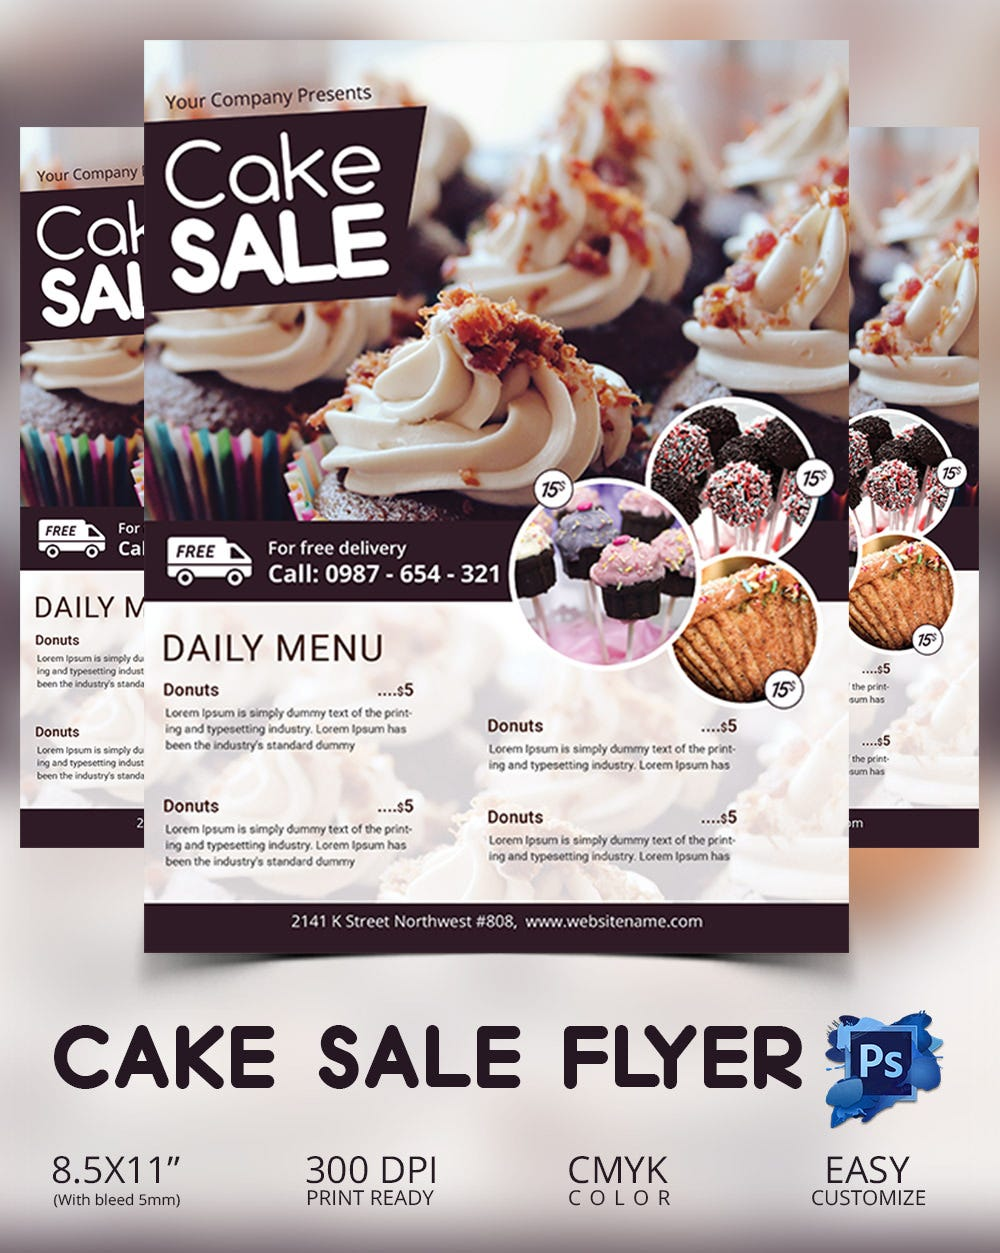 Bake Sale Flyer Template 24 Free PSD Indesign AI Format – For Sale Flyer Template Free